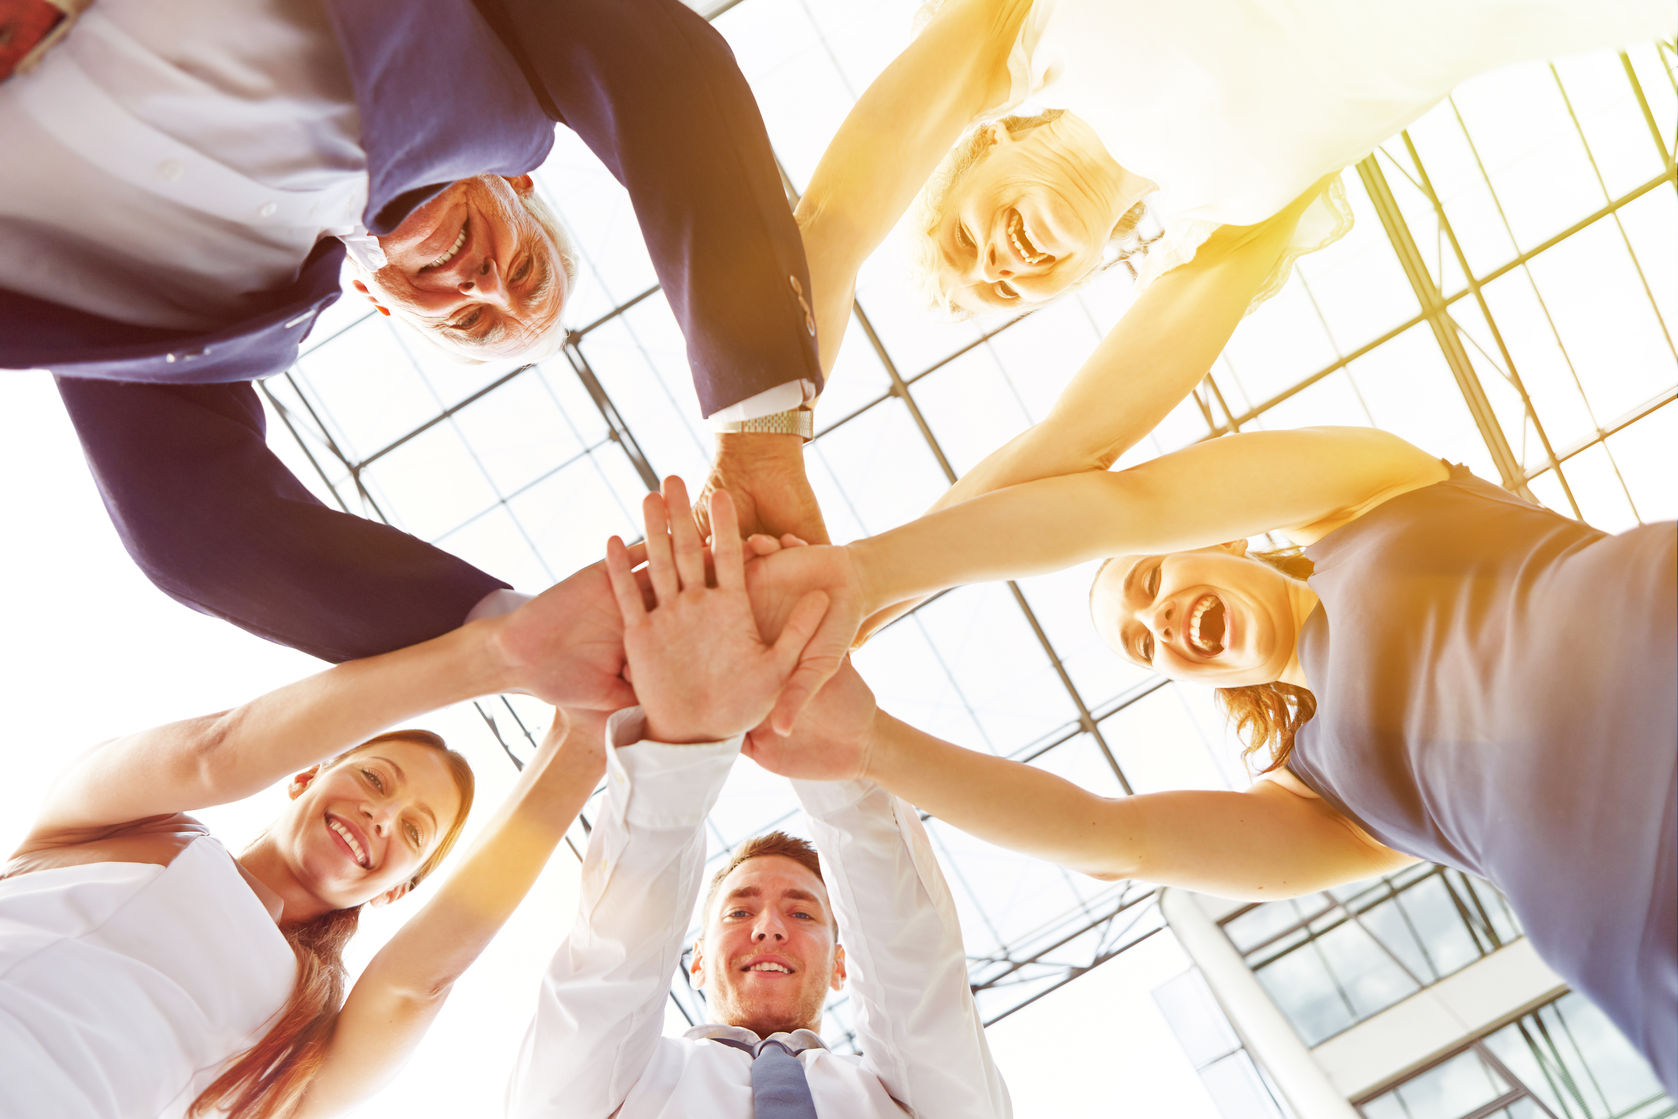 Accountants-on-site   Payroll services